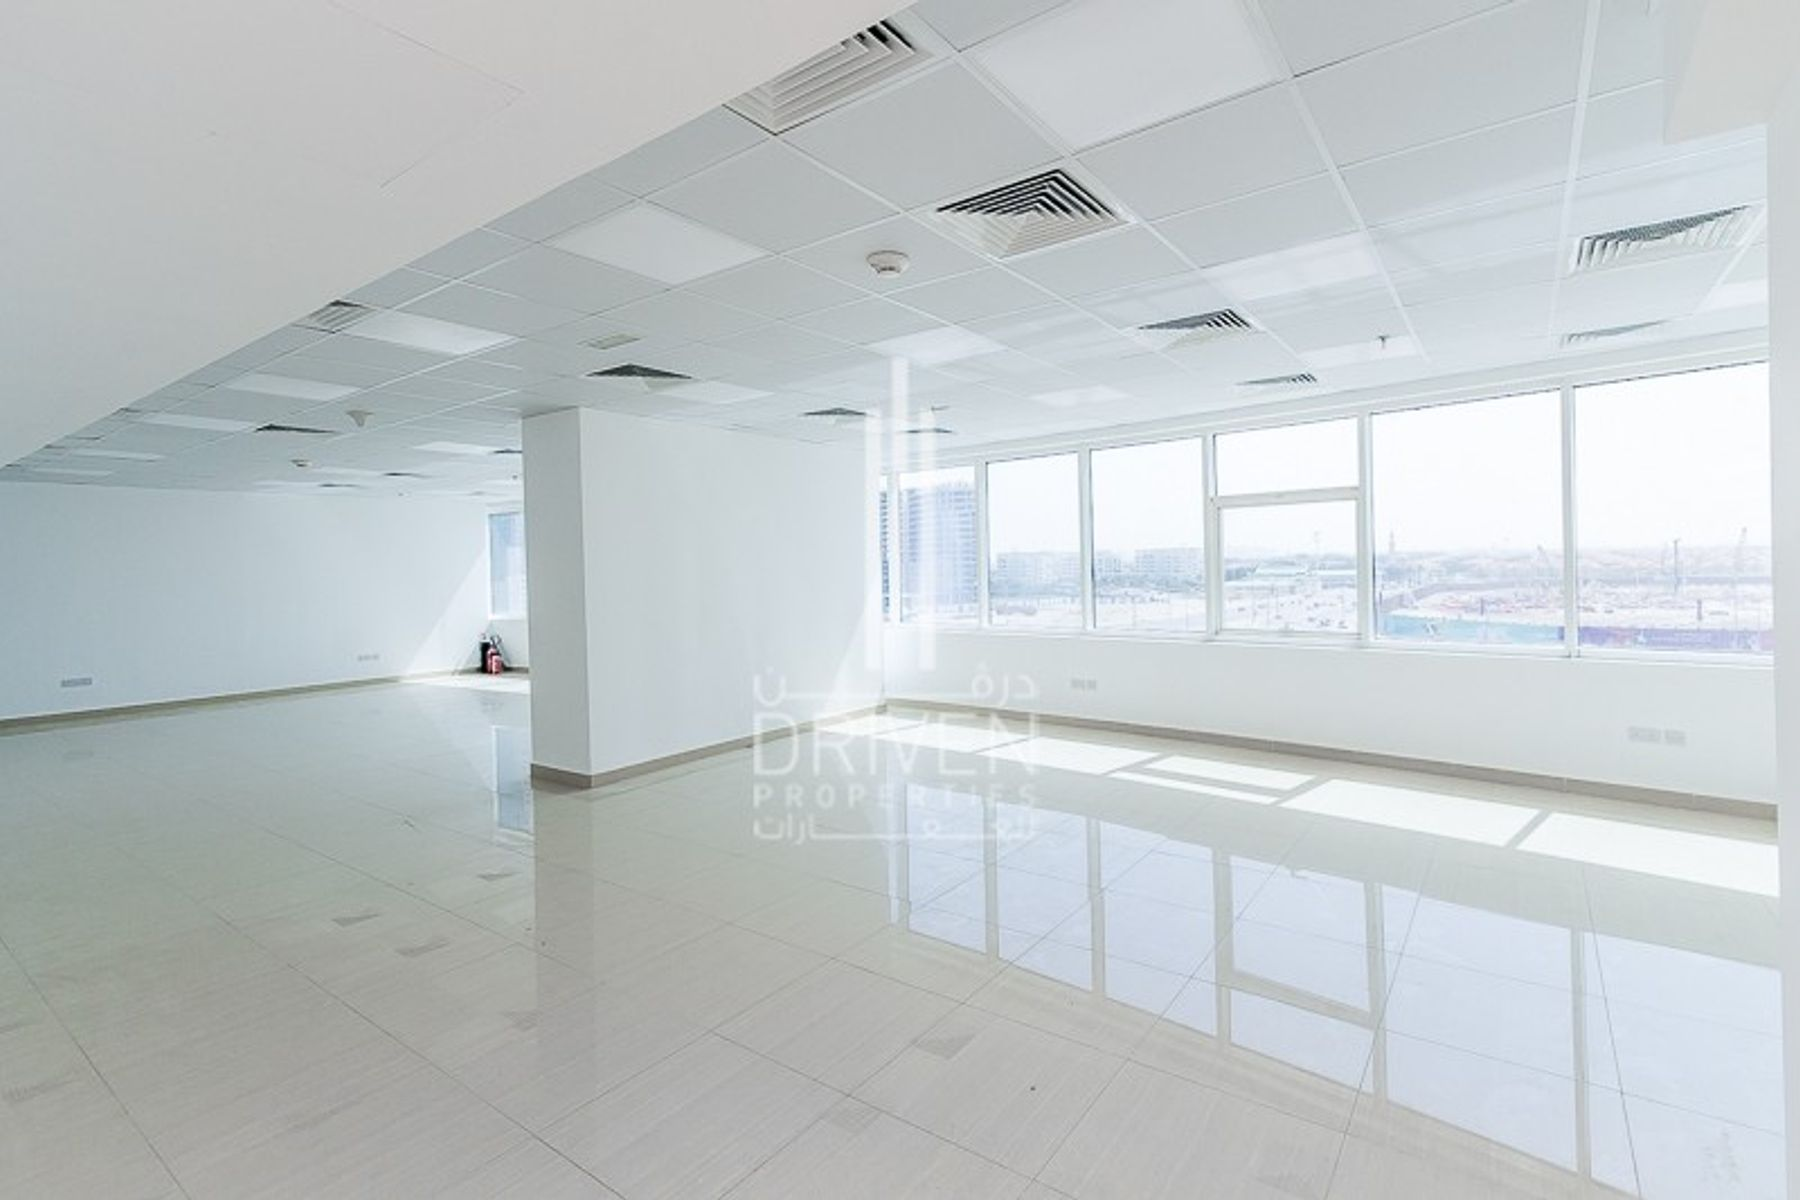 Excellent layout spacious office space l JLT